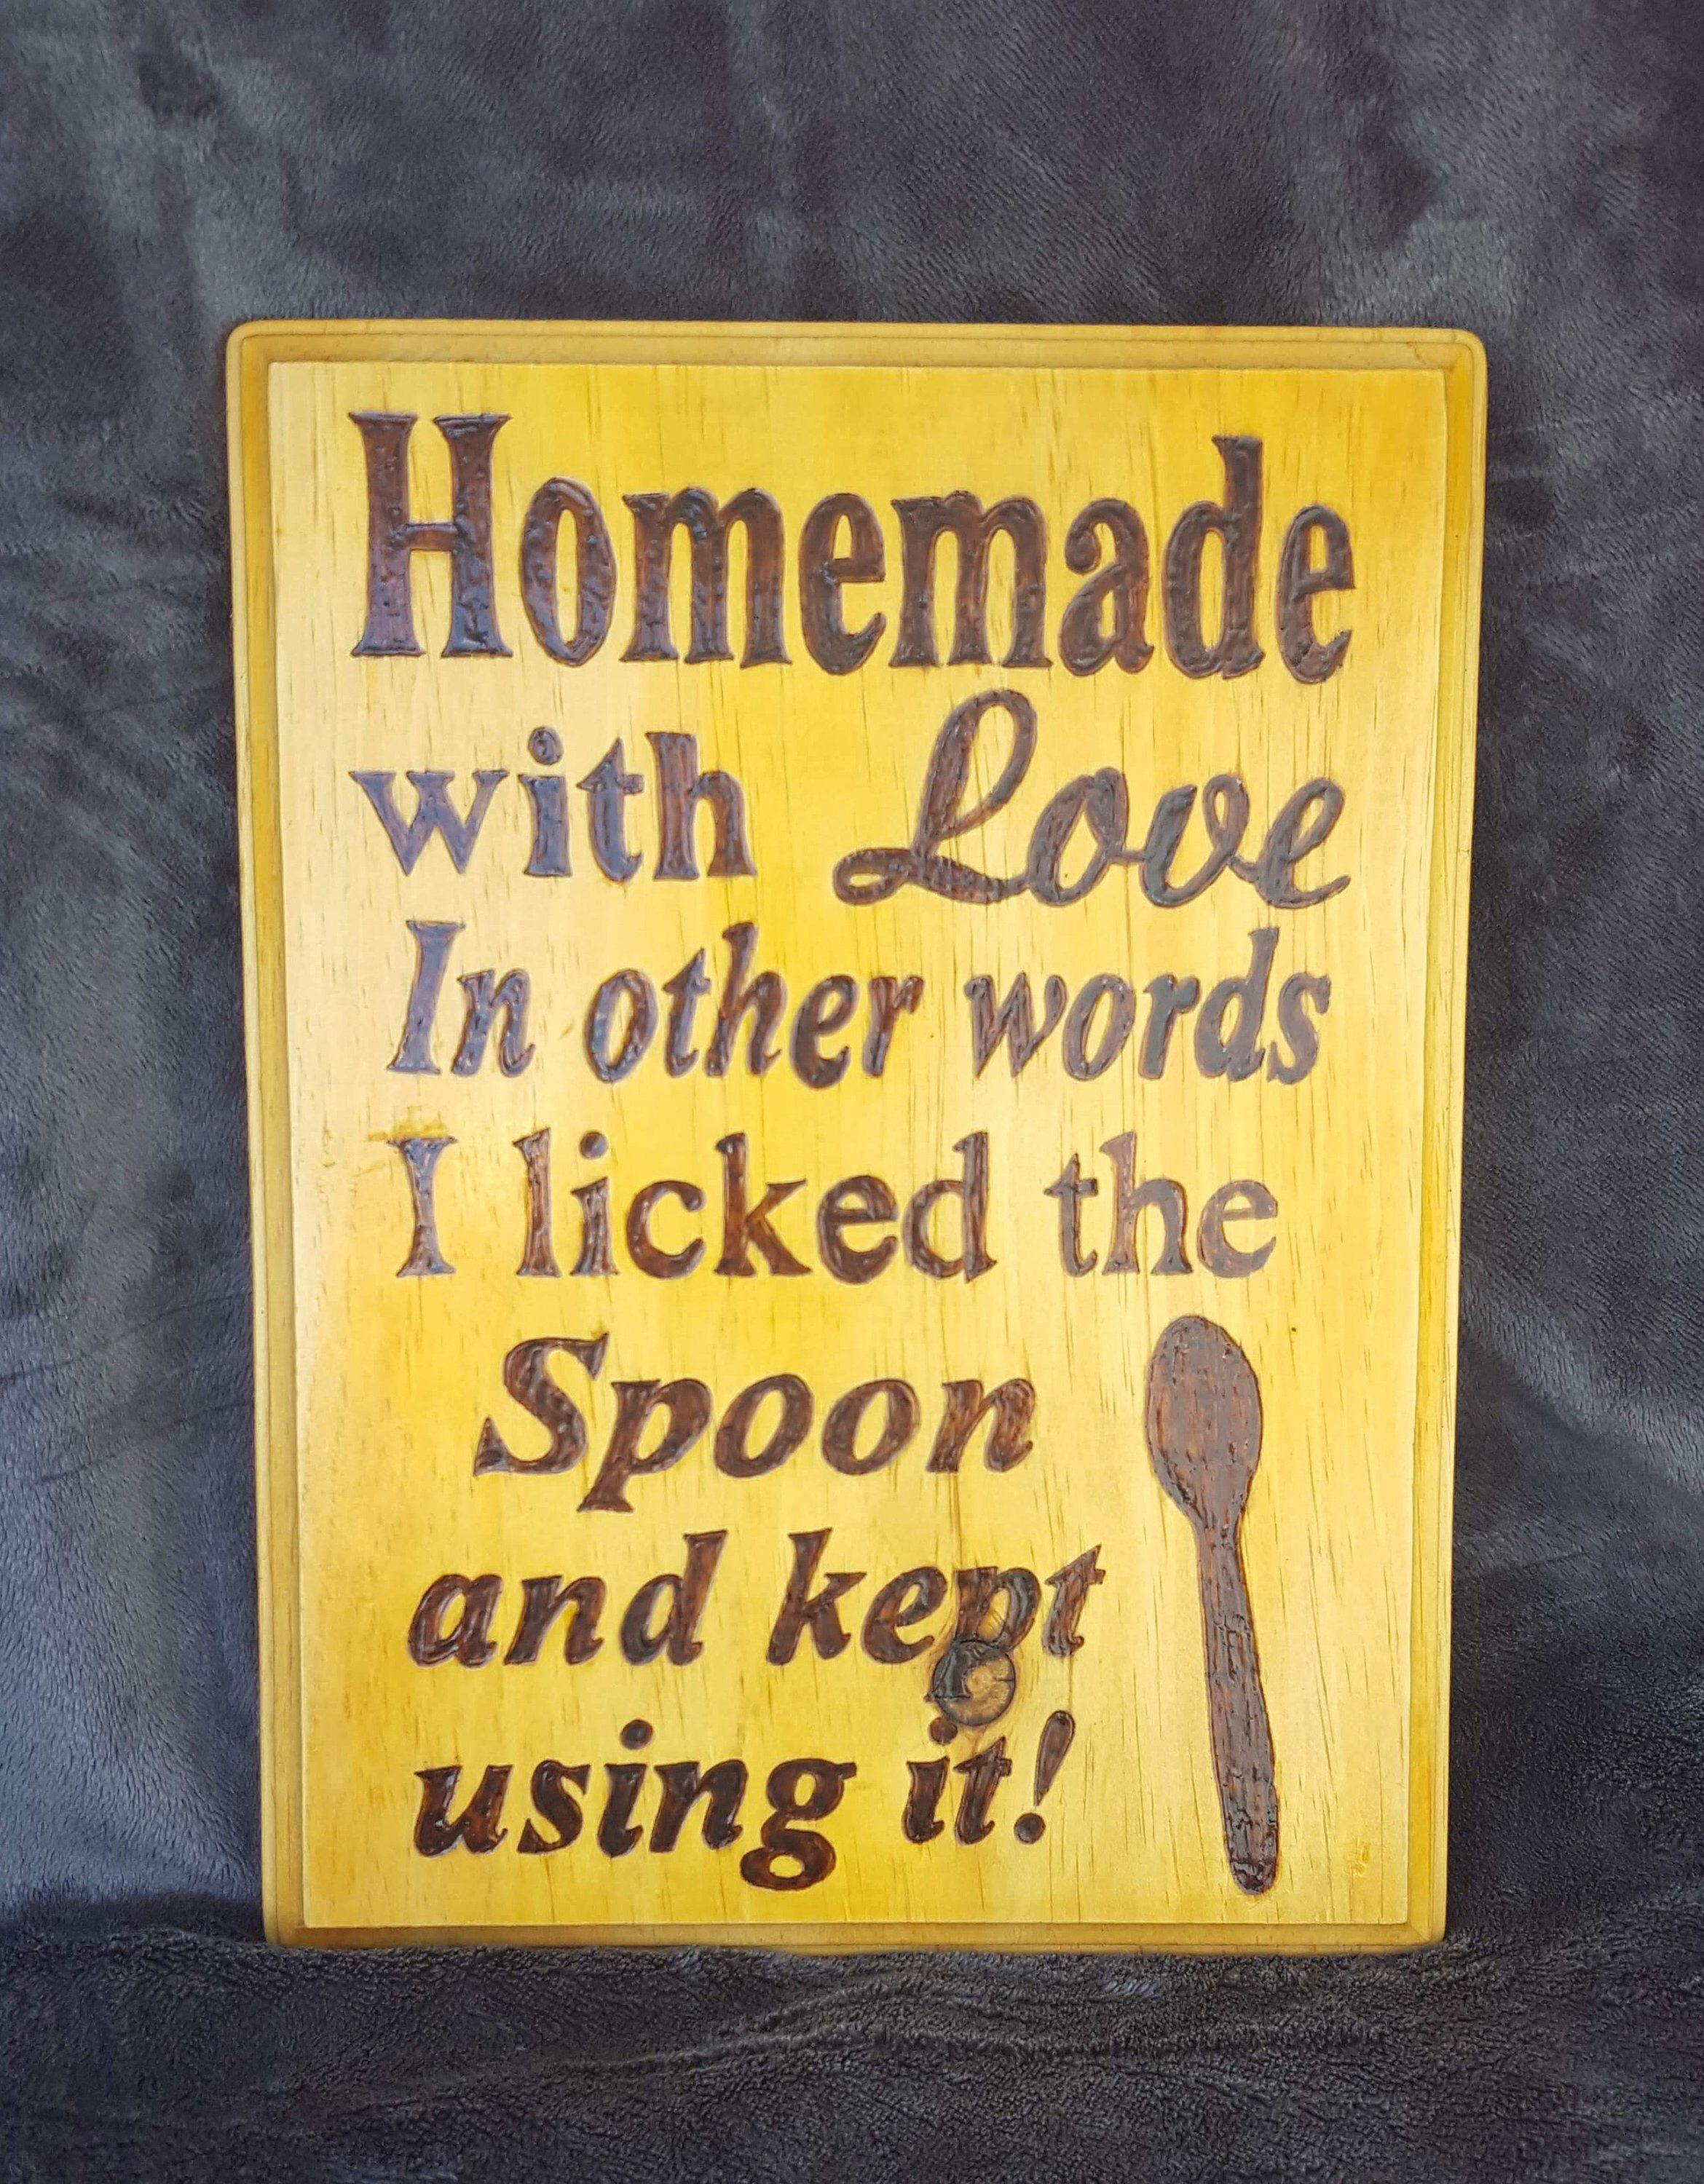 Homemade with love in other words I licked the spoon and